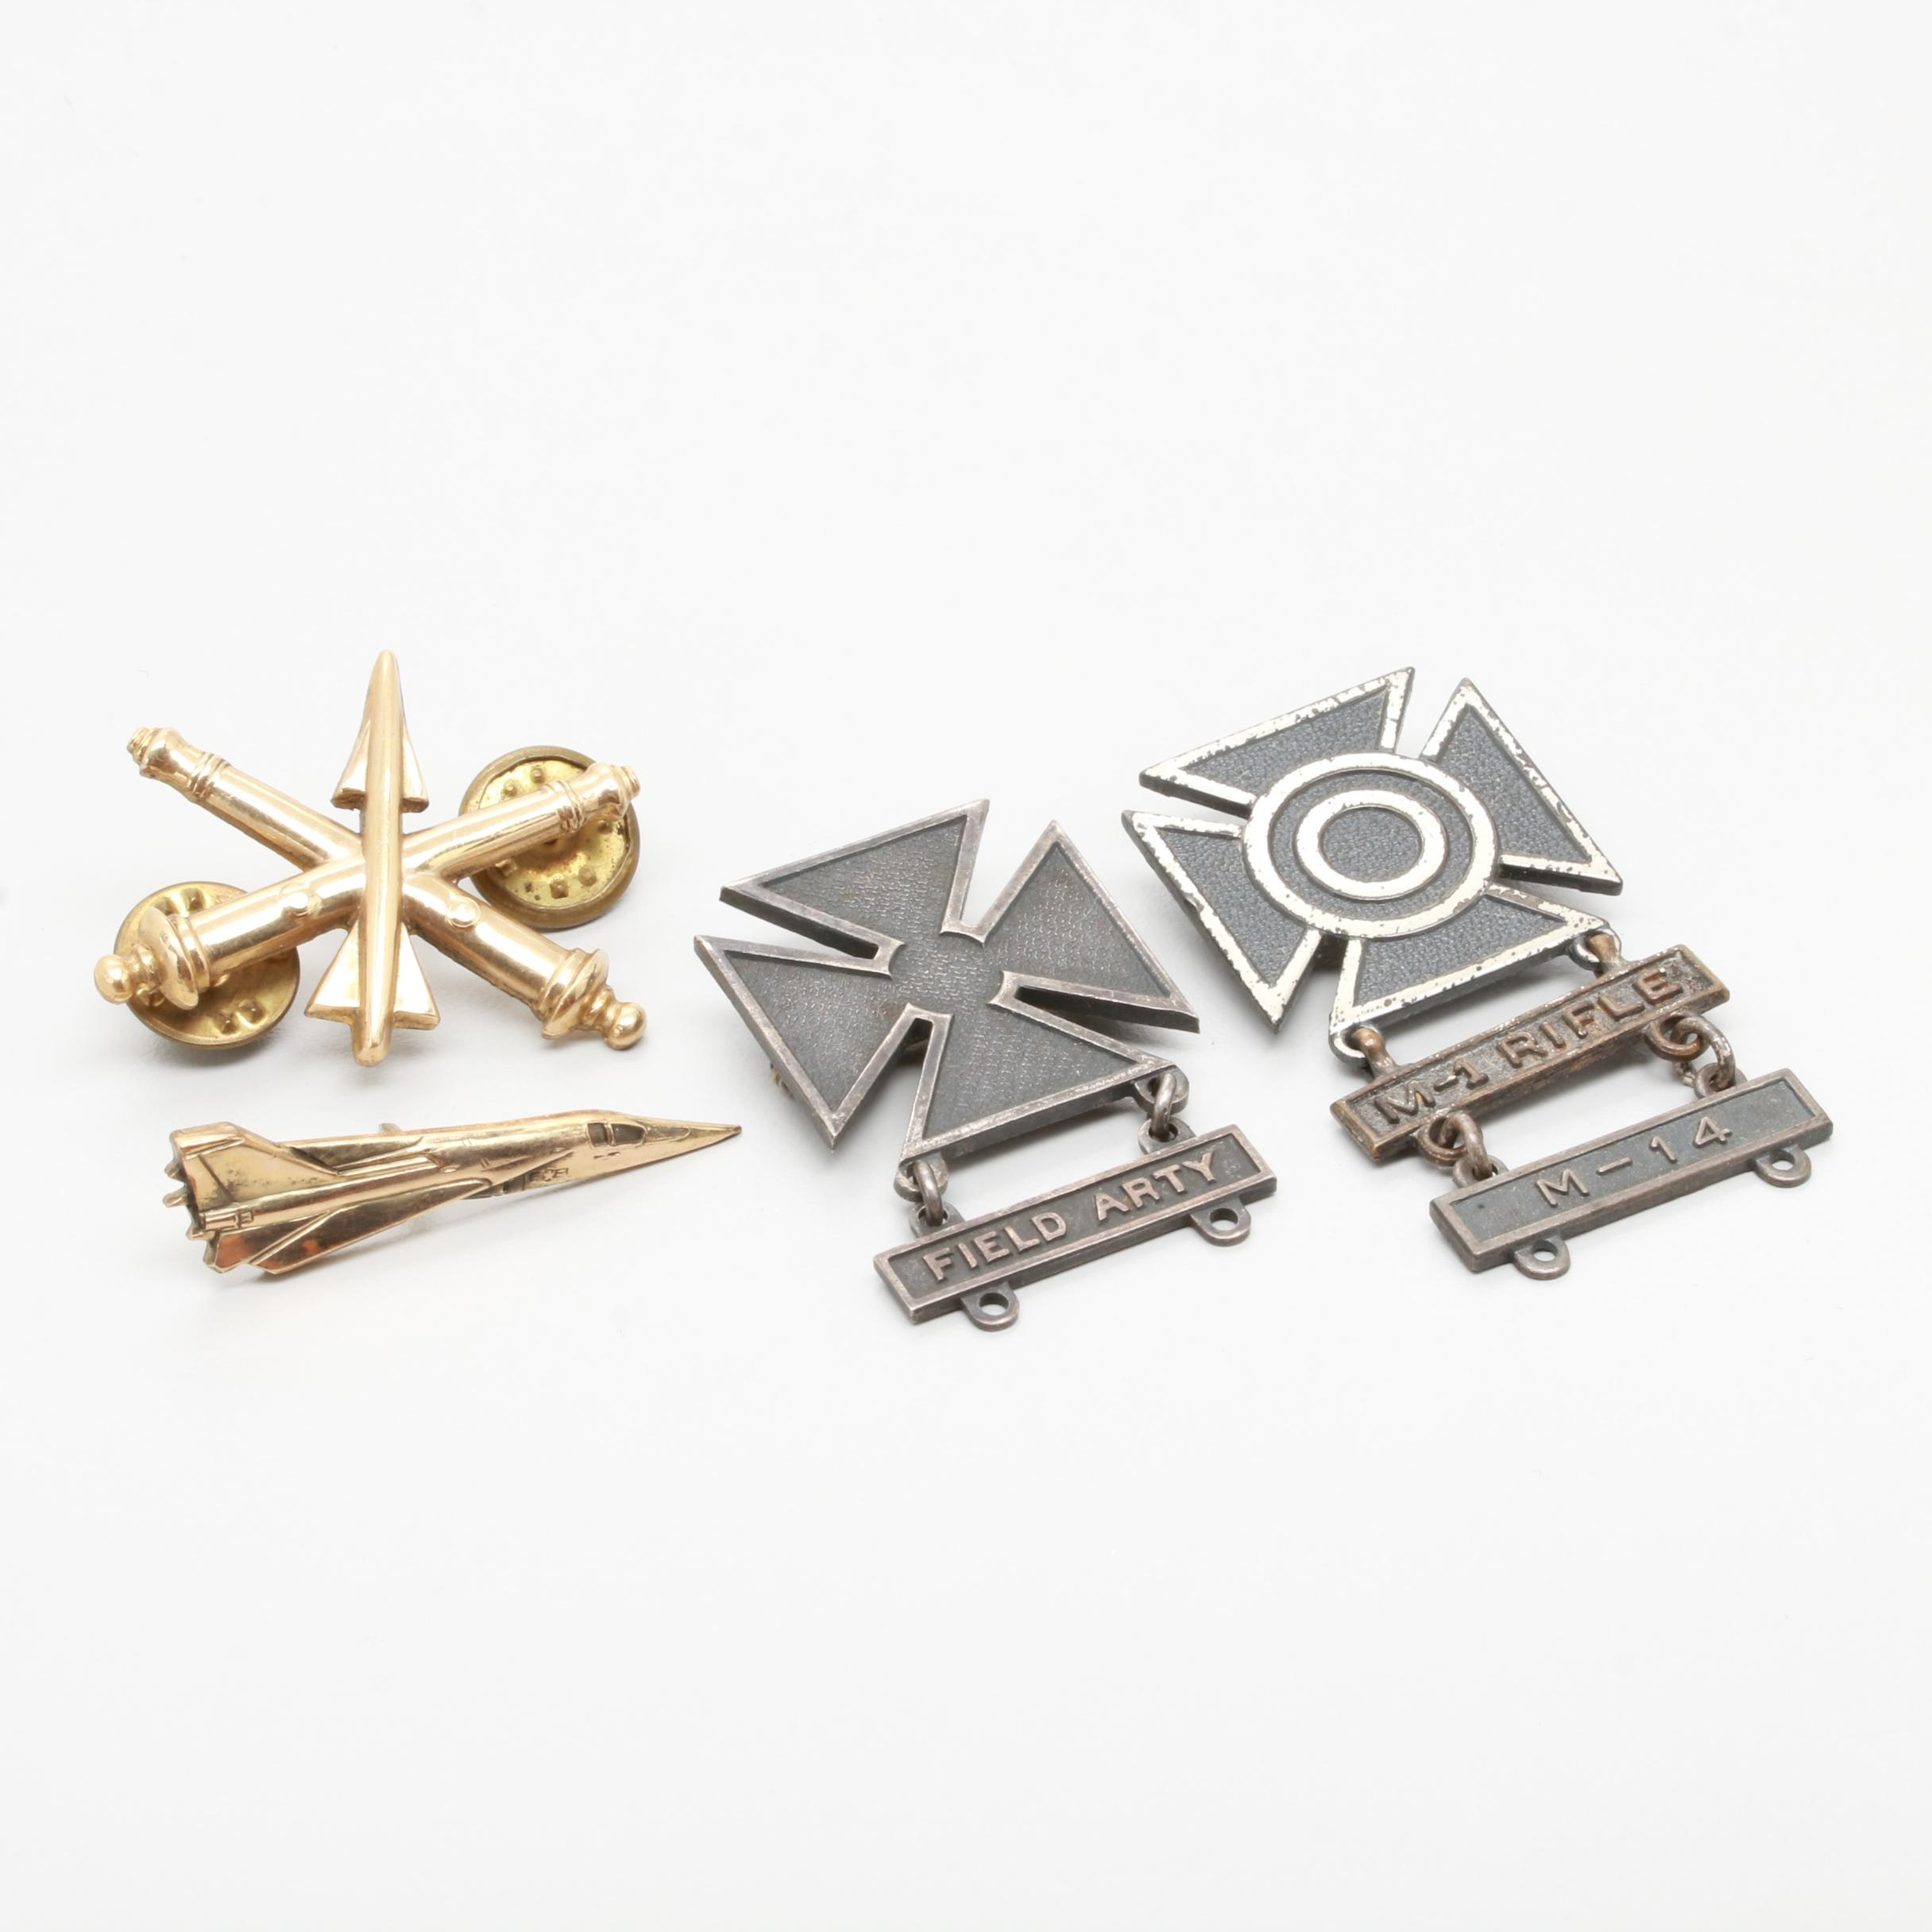 Sterling Silver Army Marksman and Field Artillery Badges with Gold-Toned Pins